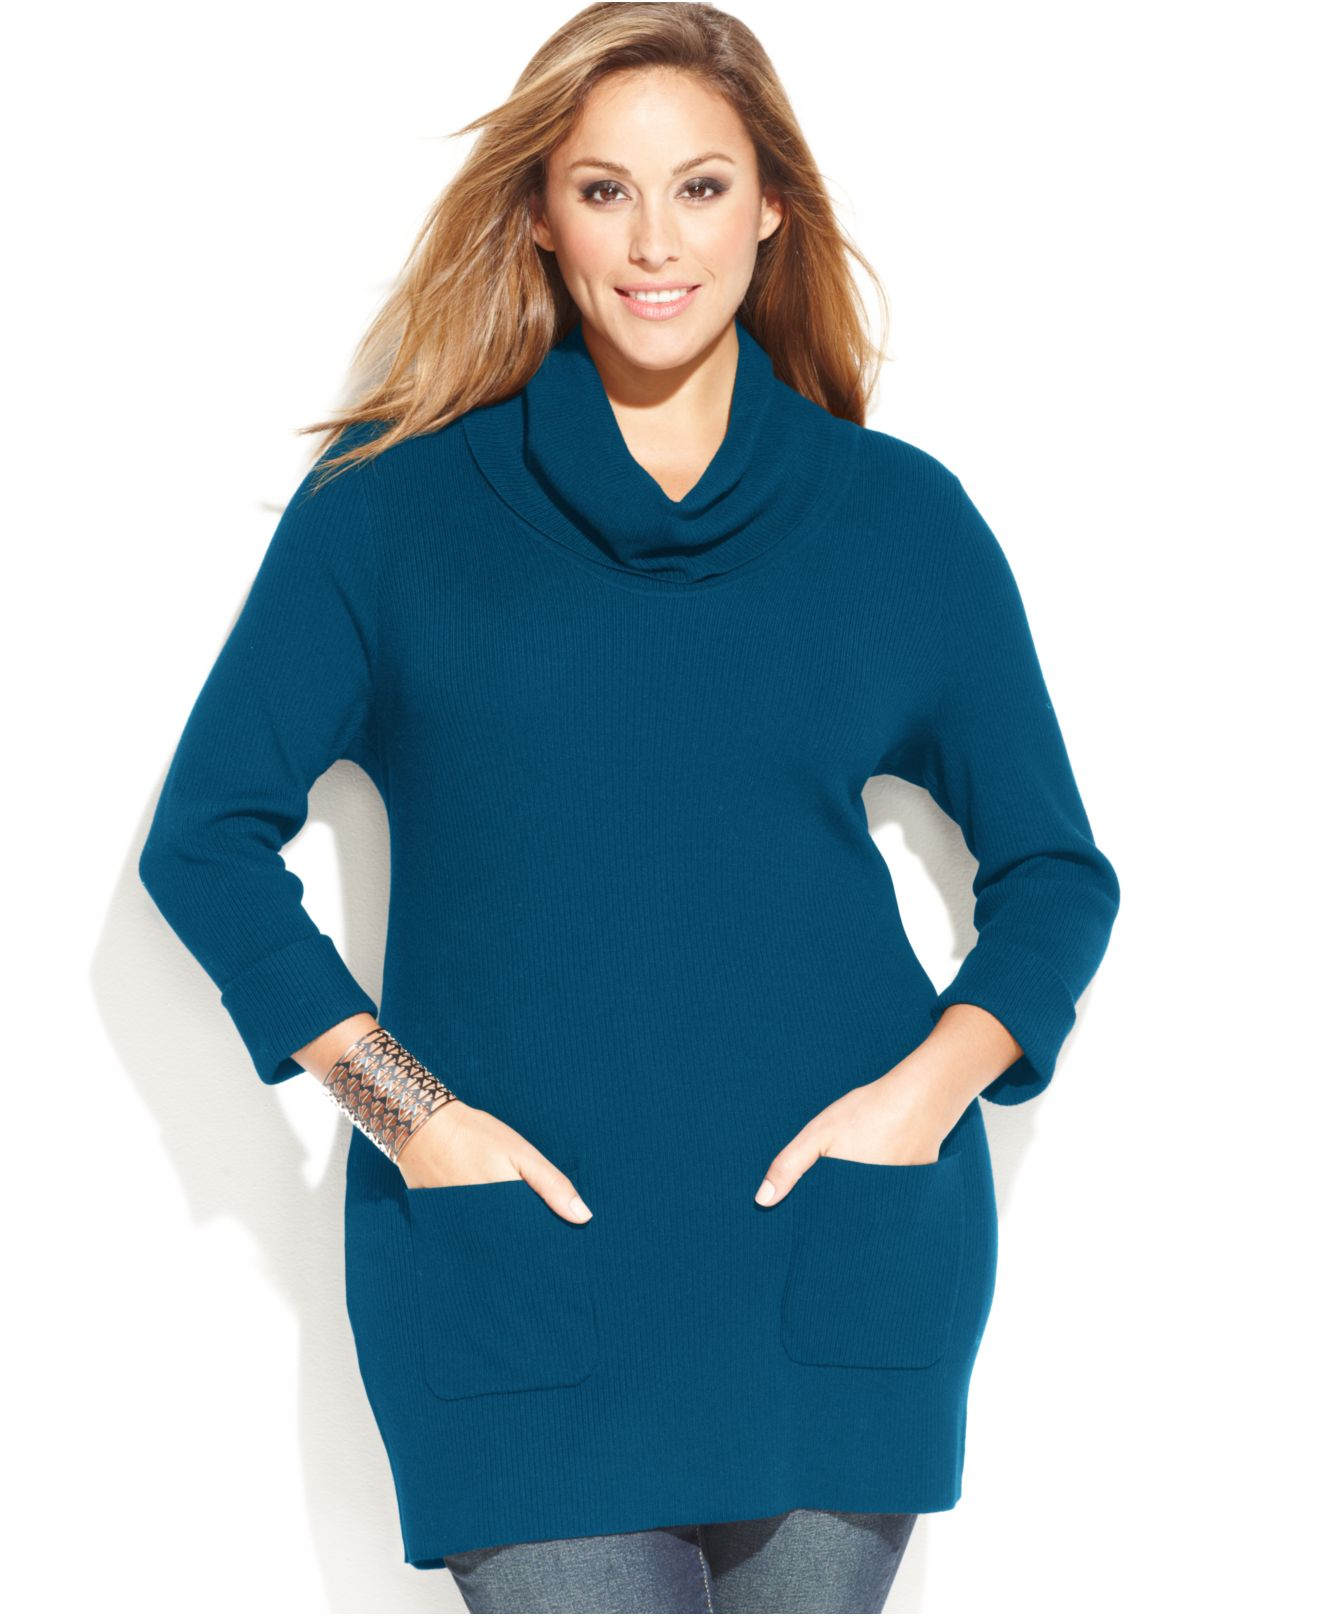 Shop a great selection of Tunics for Women at Nordstrom Rack. Find designer Tunics for Women up to 70% off and get free shipping on orders over $